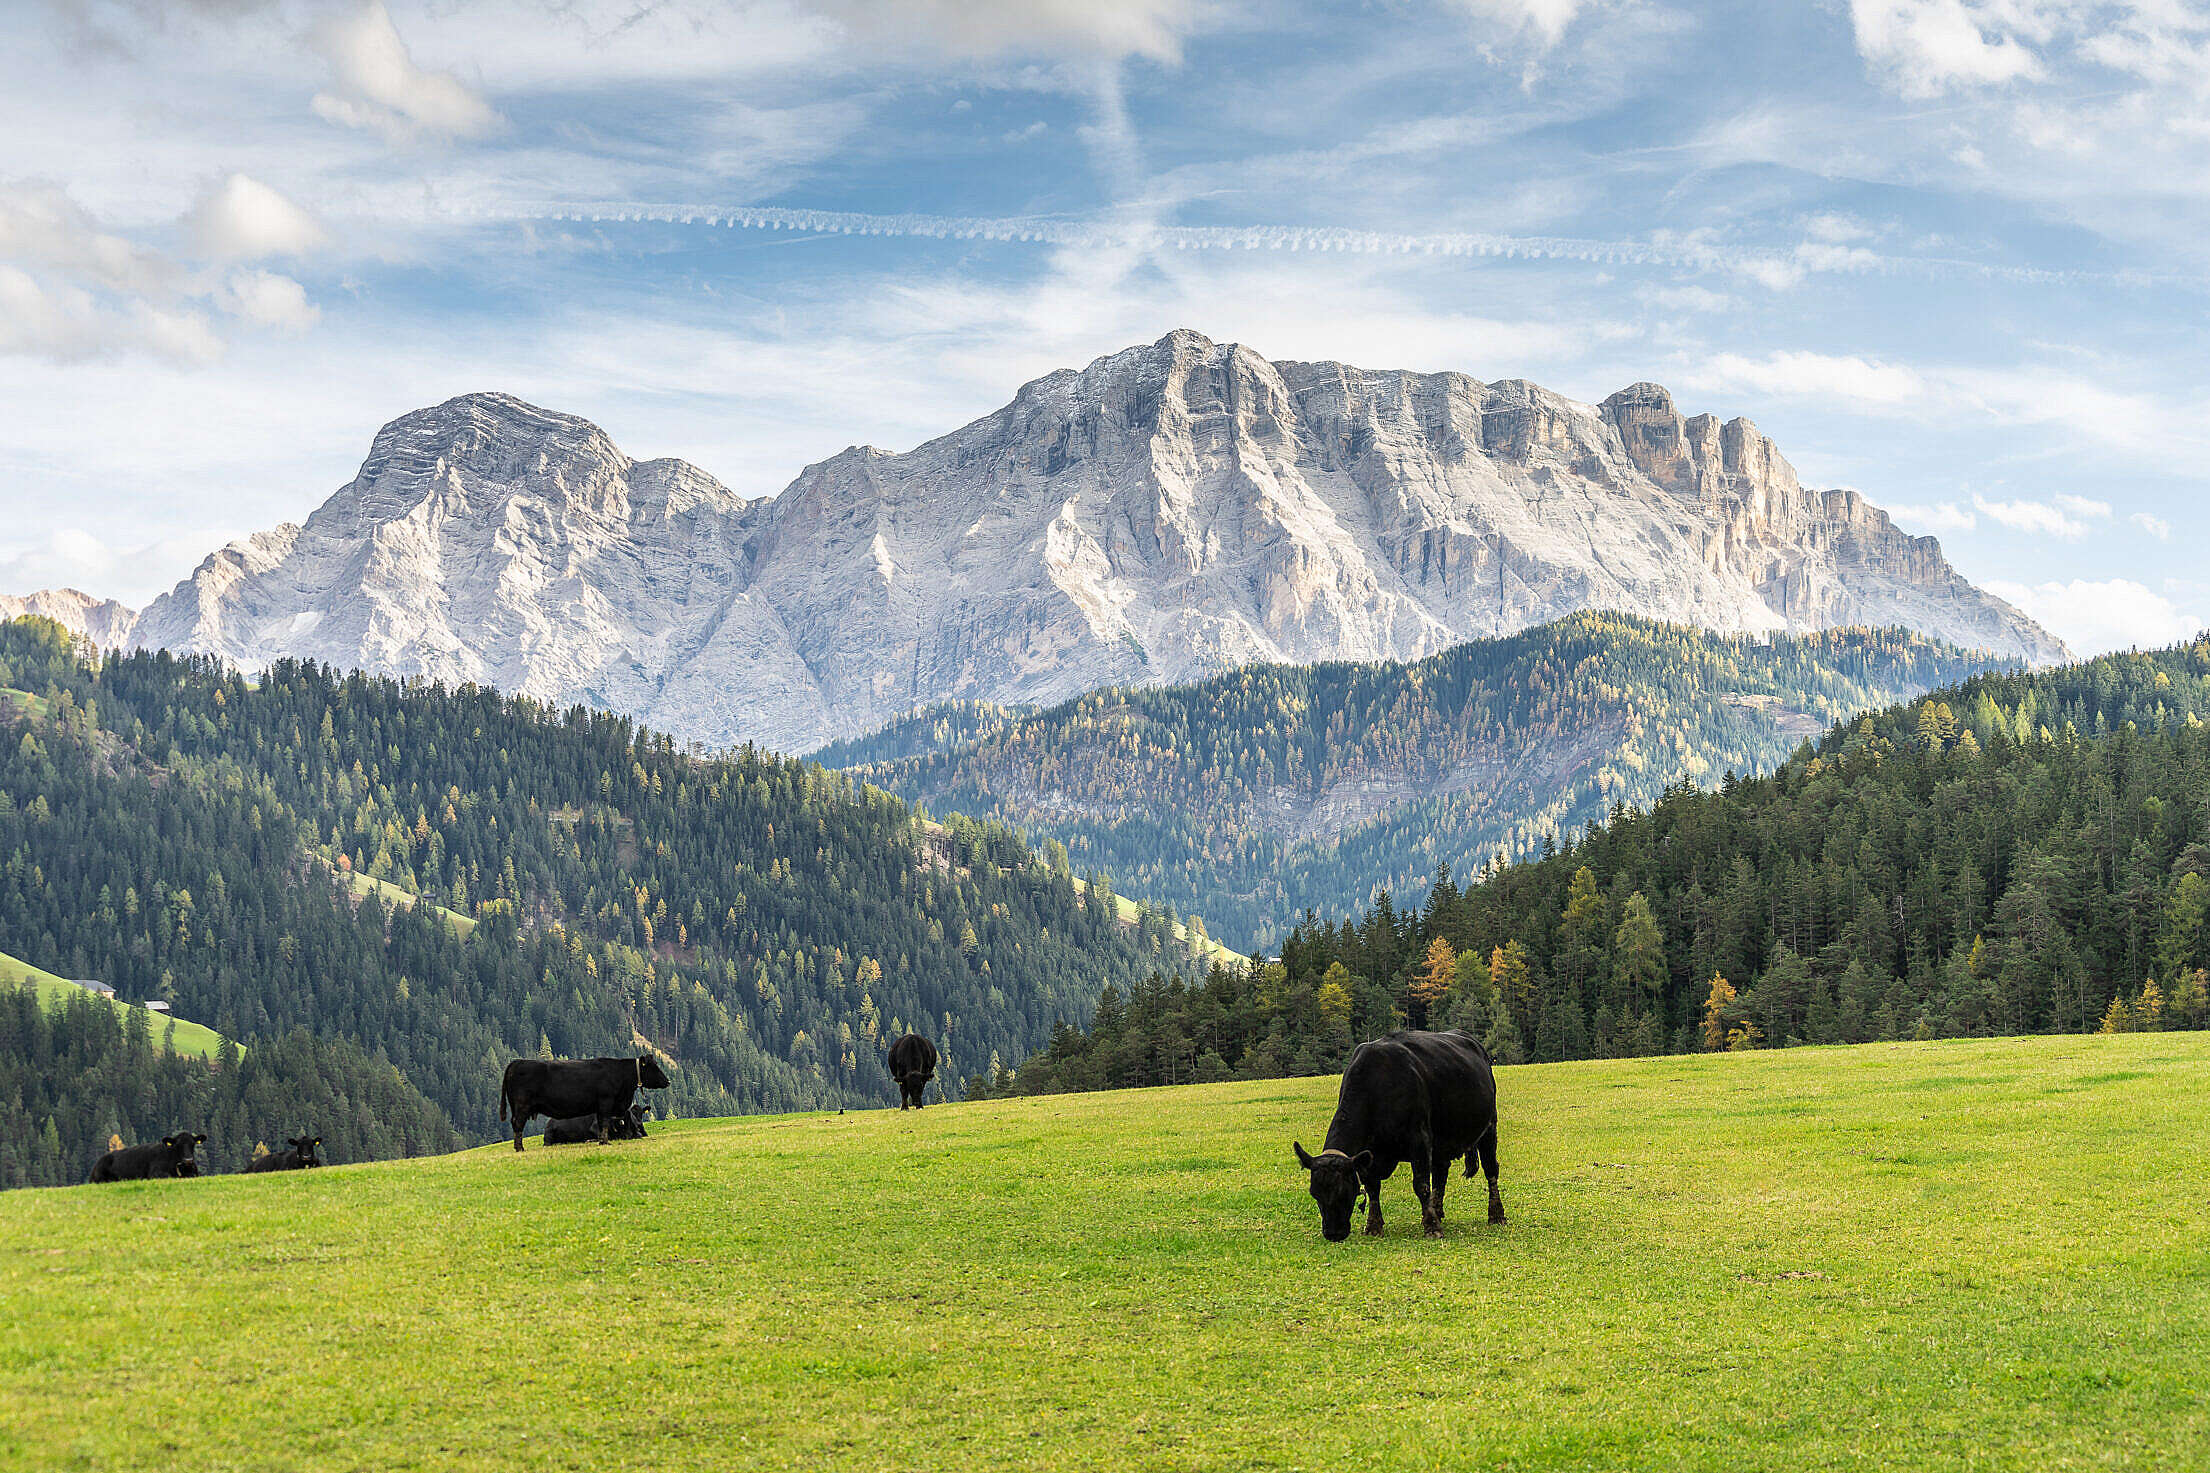 Cows Grazing in The Dolomites Free Stock Photo